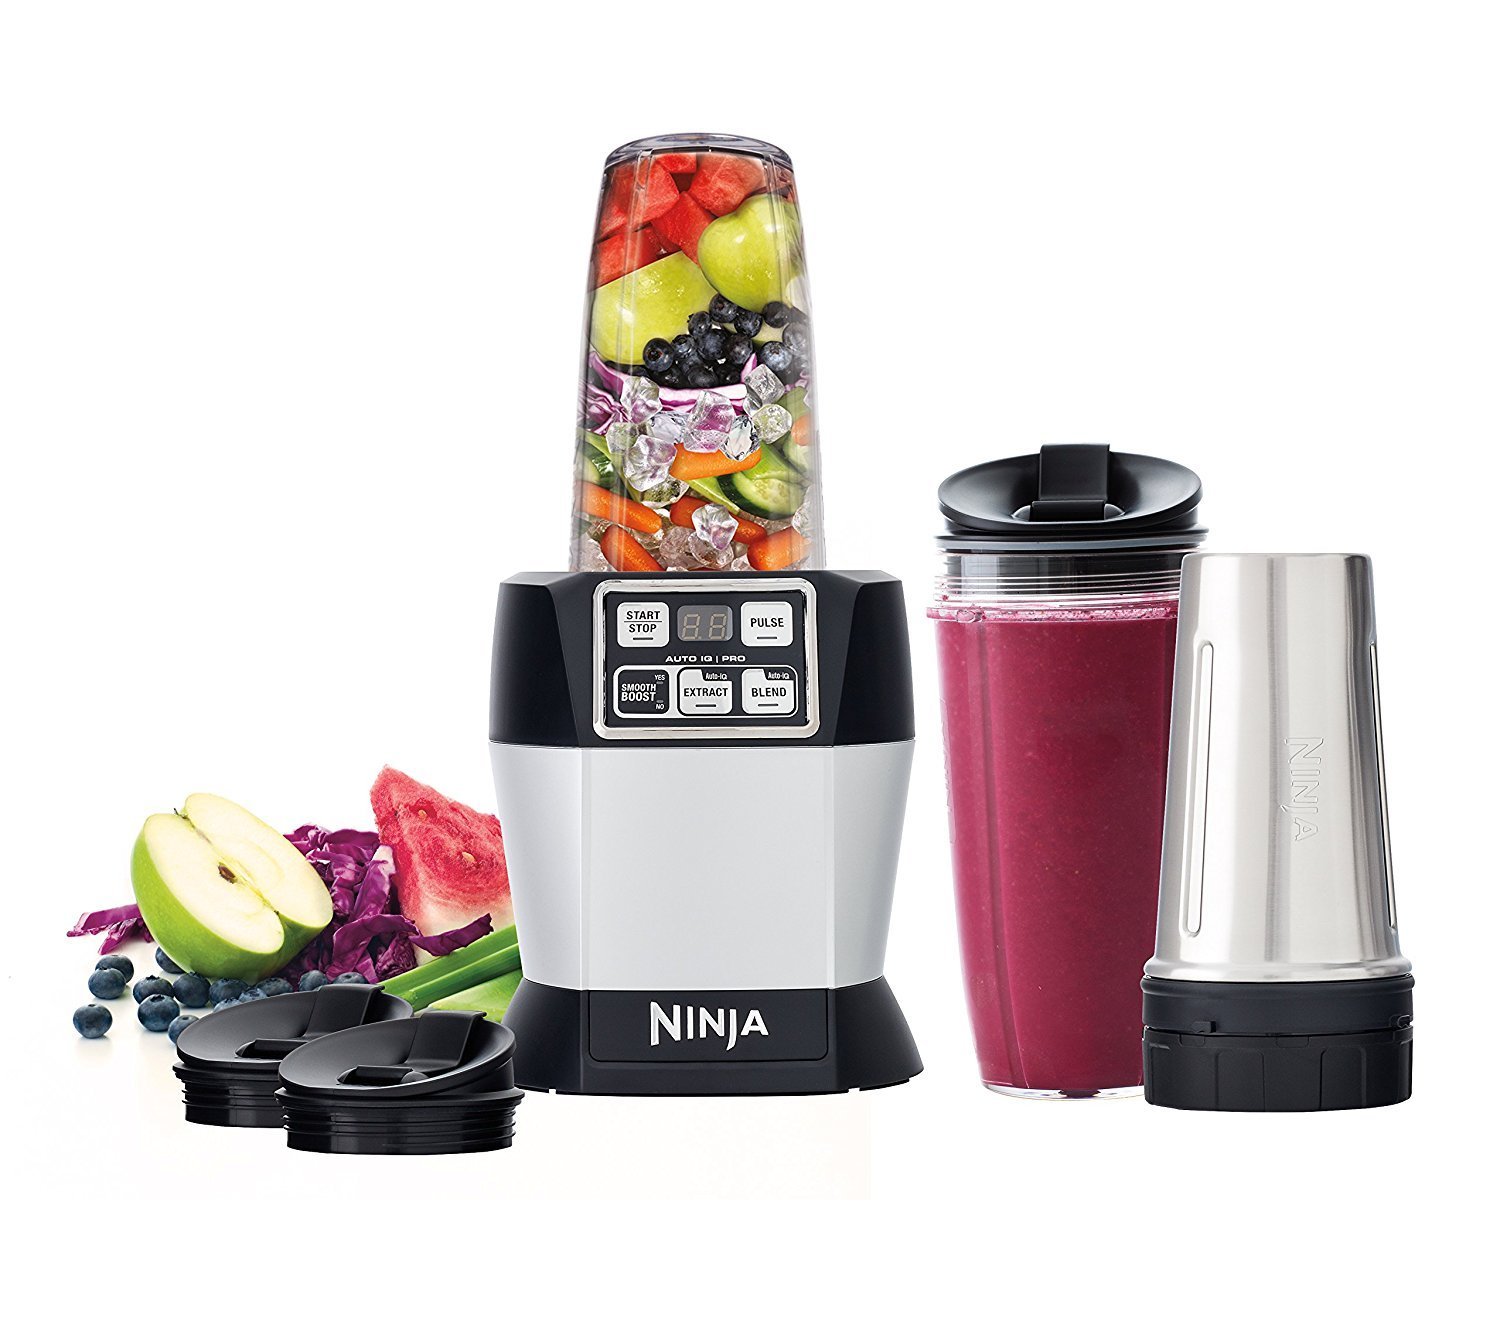 Nutri Ninja BL487 1100 watt Auto iQ Pro Nutrient & Vitamin Extraction Blender (Certified Refurbished)